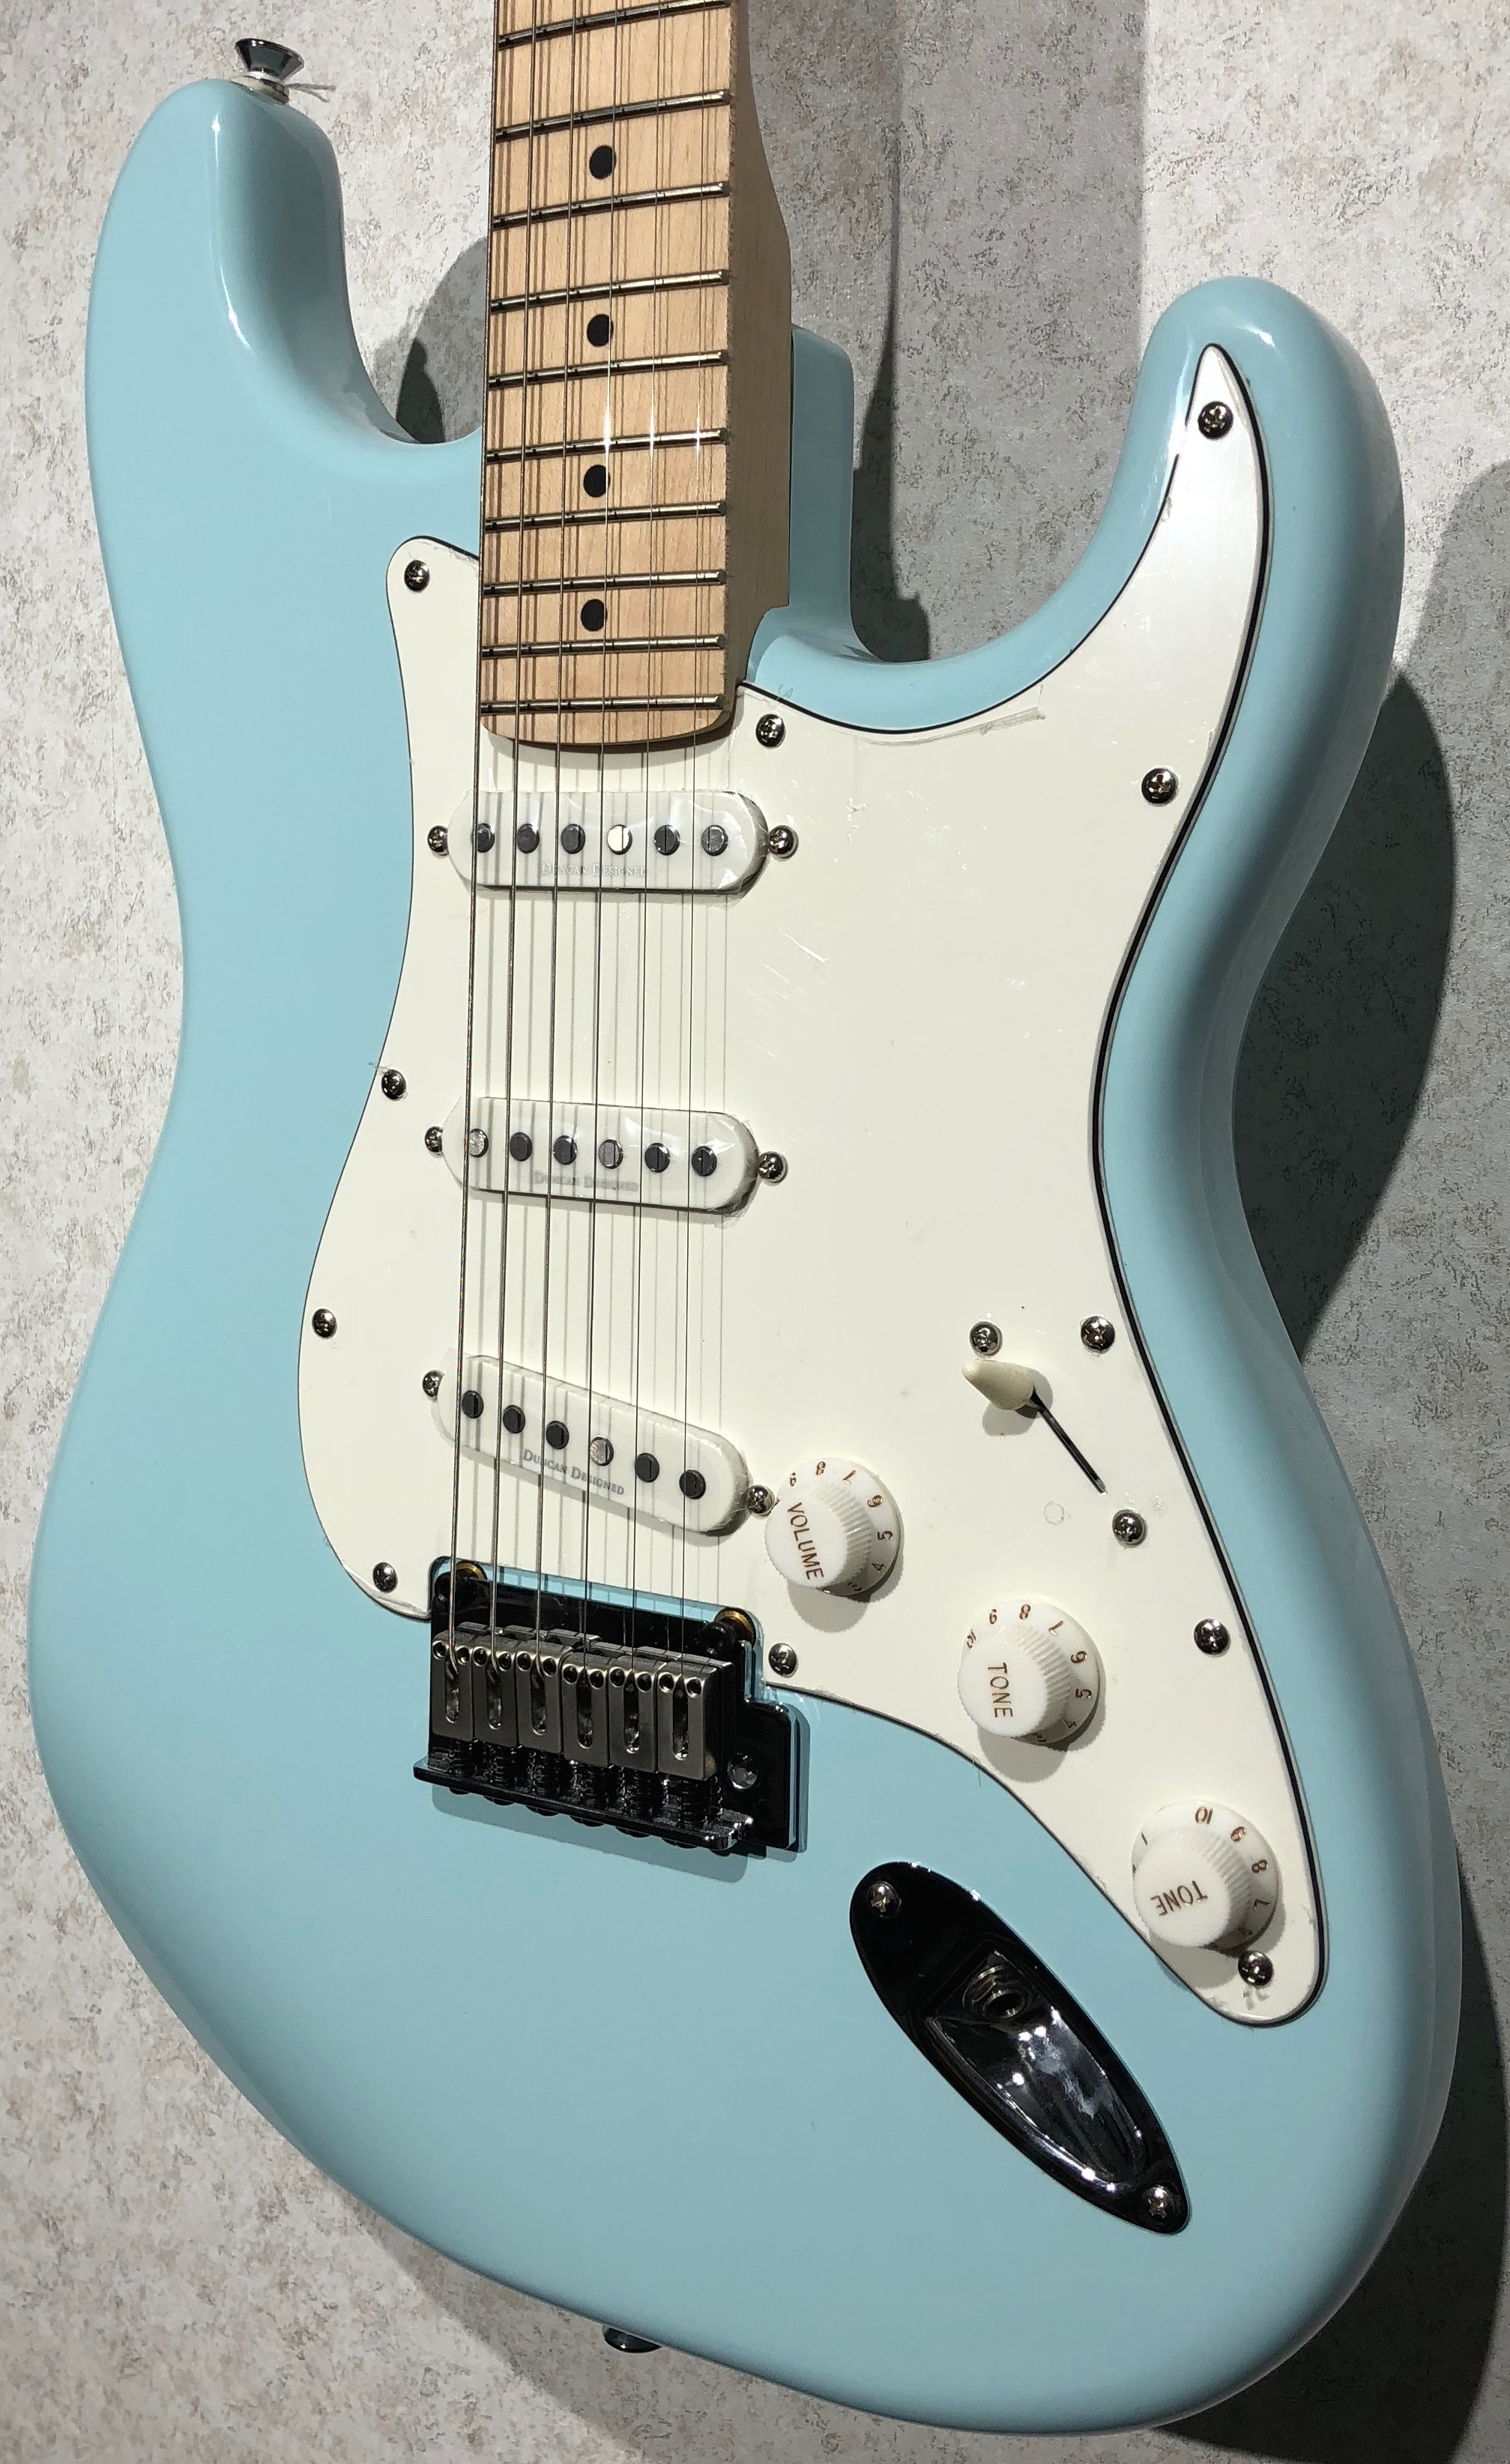 squier deluxe strat daphne blue body right legacy music. Black Bedroom Furniture Sets. Home Design Ideas